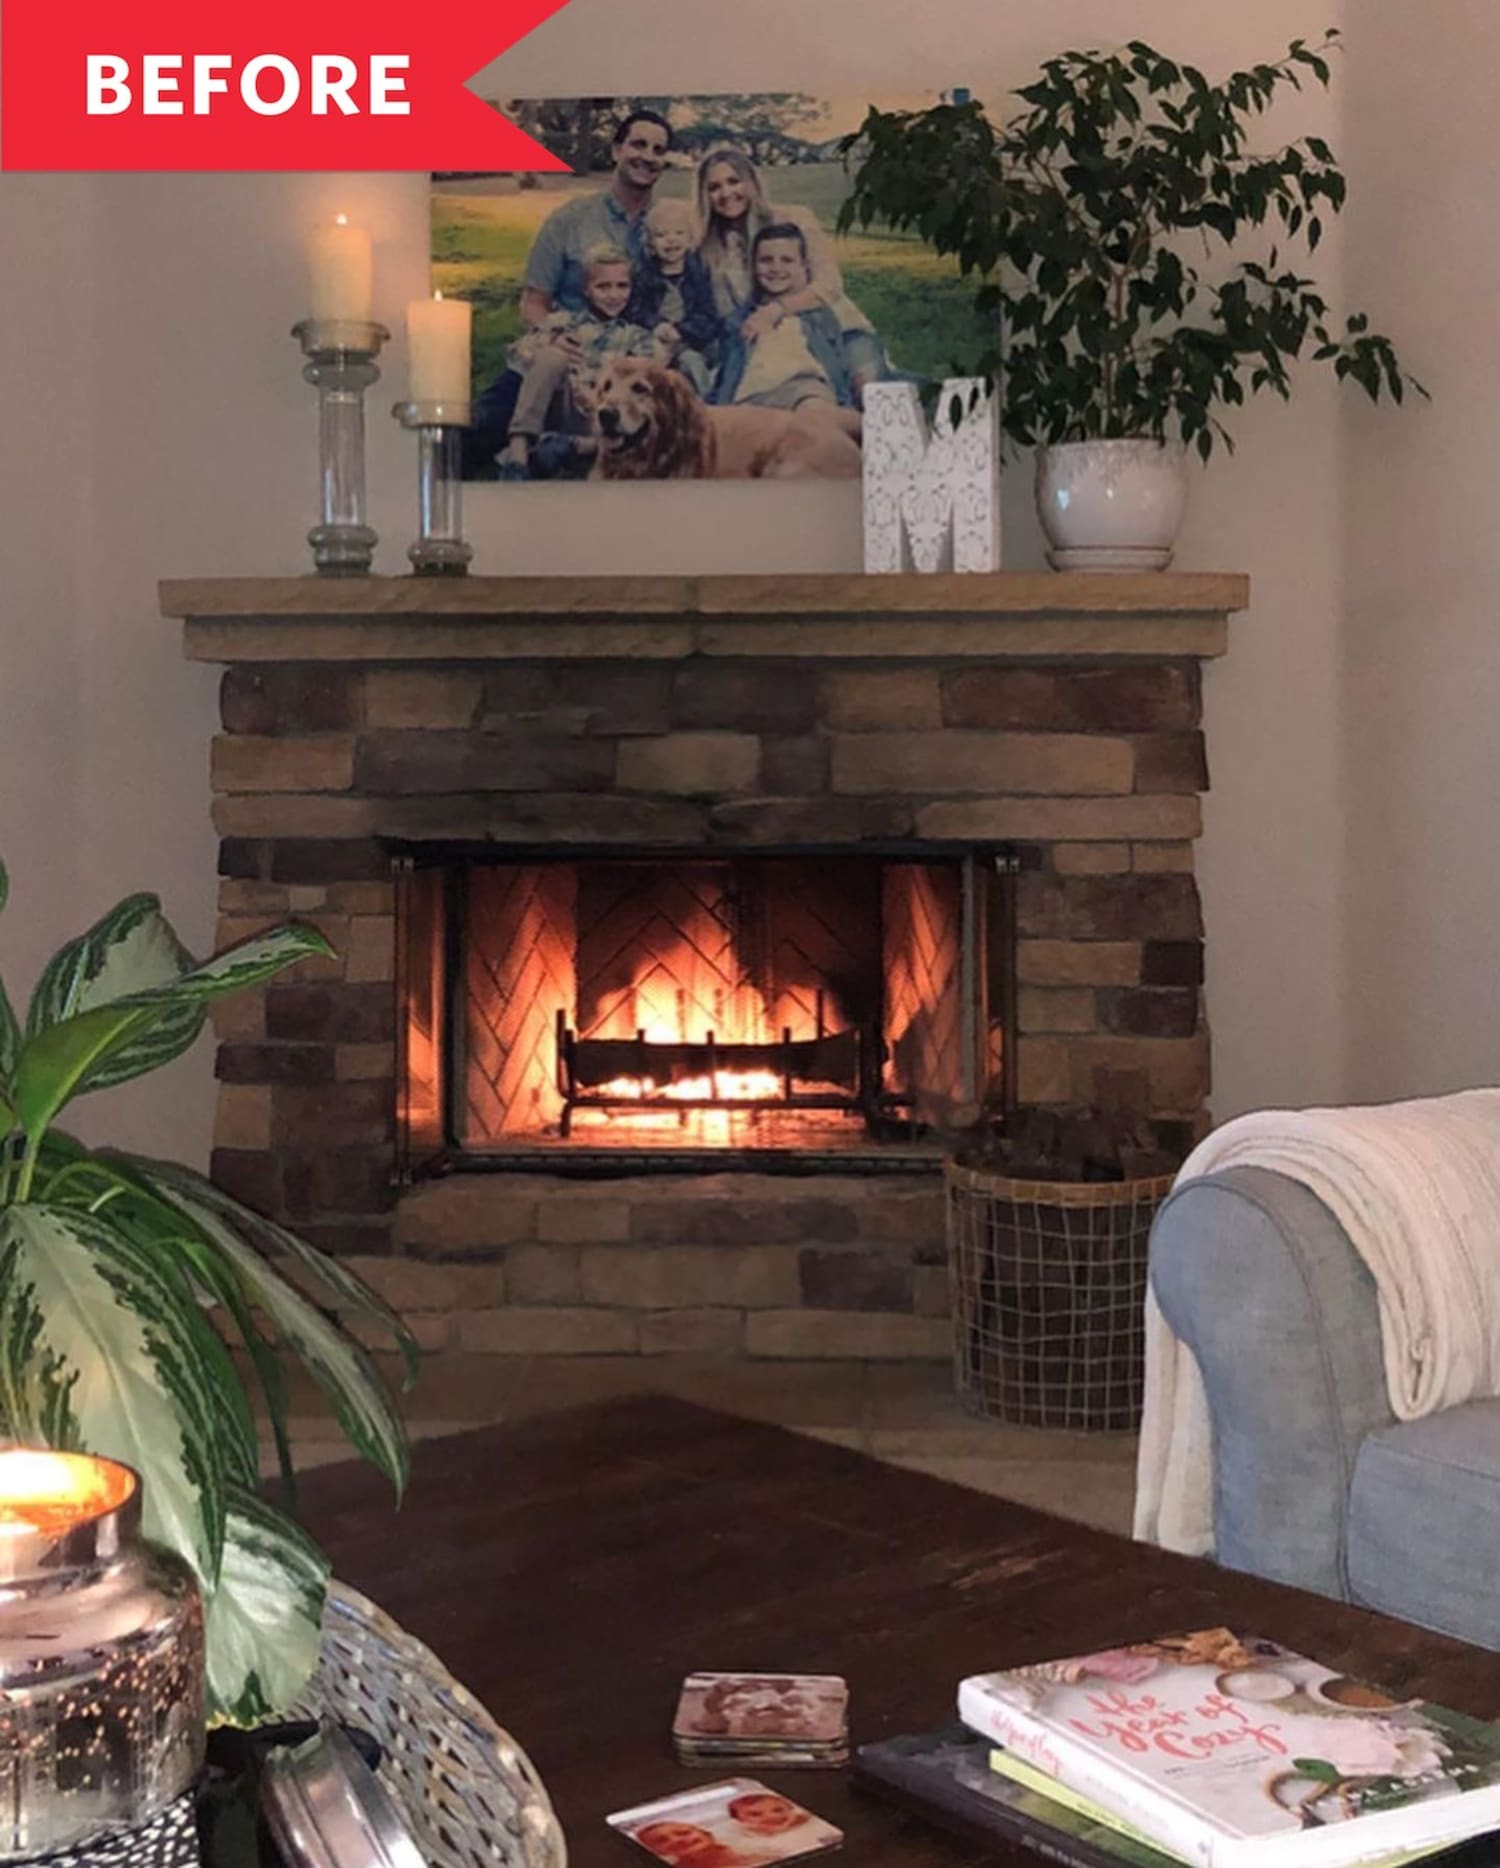 Before and After: A Dreamy Fireplace Just in Time for the Holiday Season